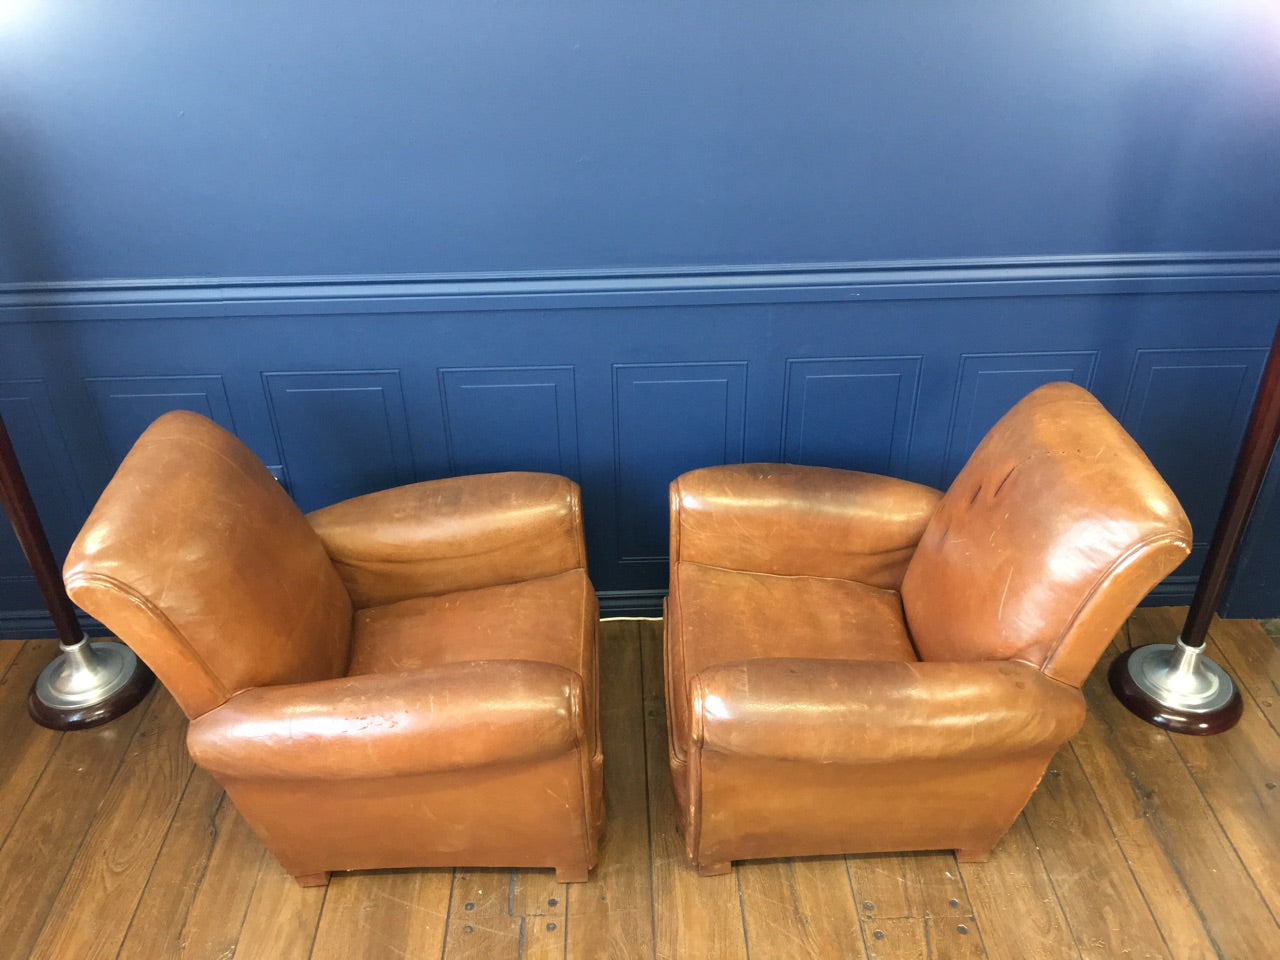 Leather 1930's Art Deco French Club Chairs - Made in France - French Antiques www.Decoparis.com